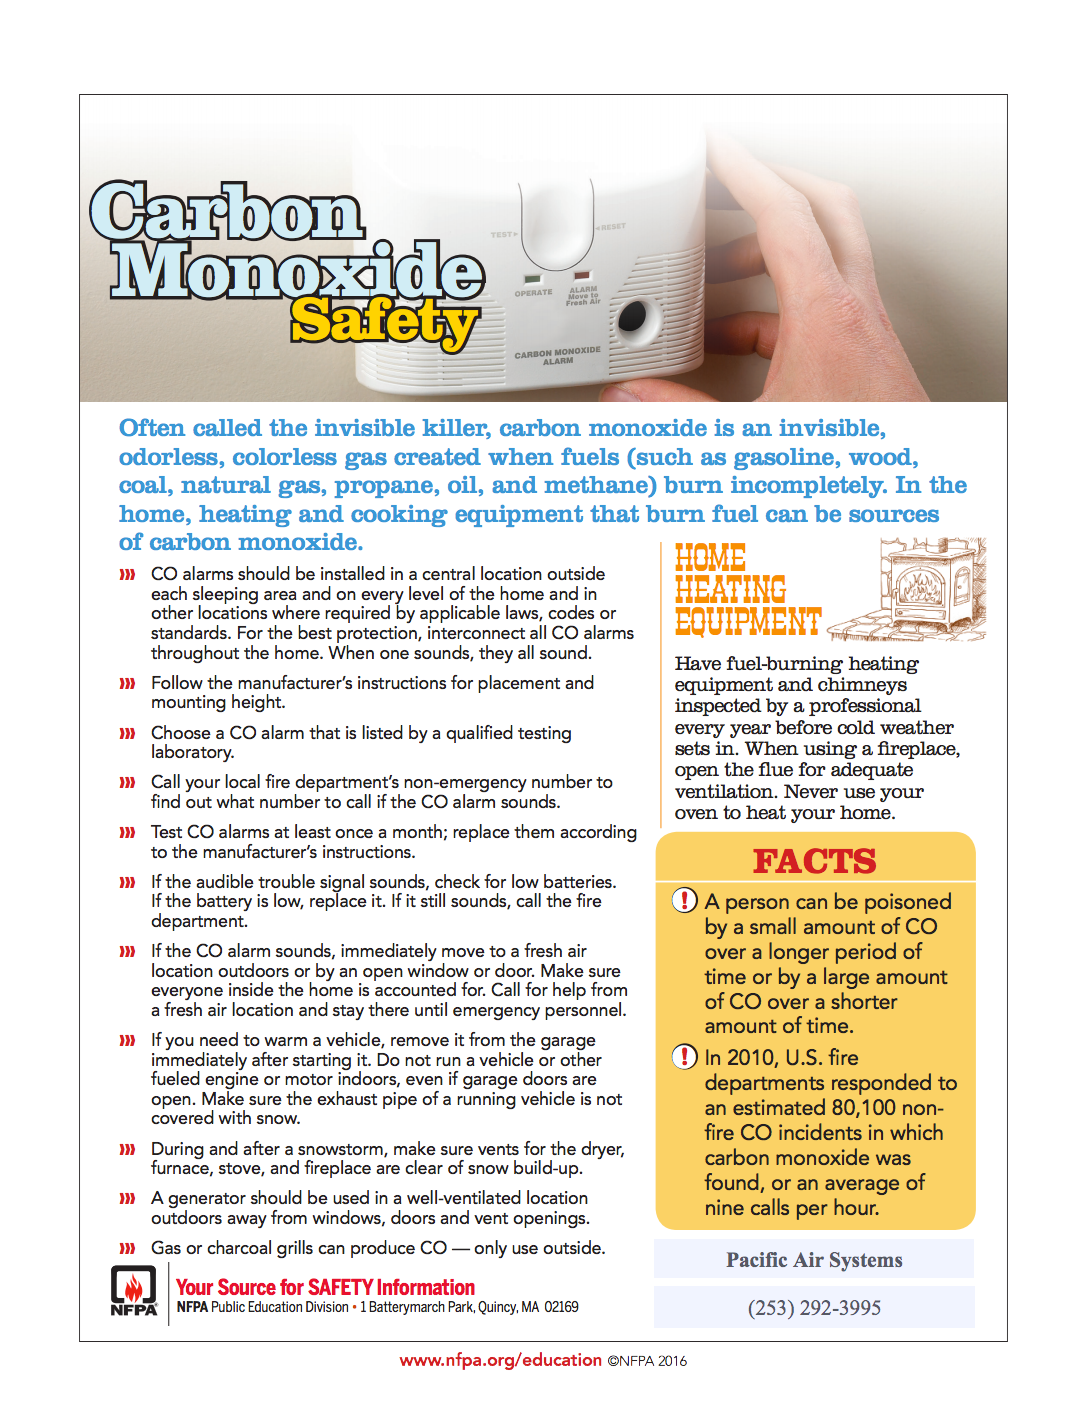 Home Pacific Heating and Cooling Carbon monoxide